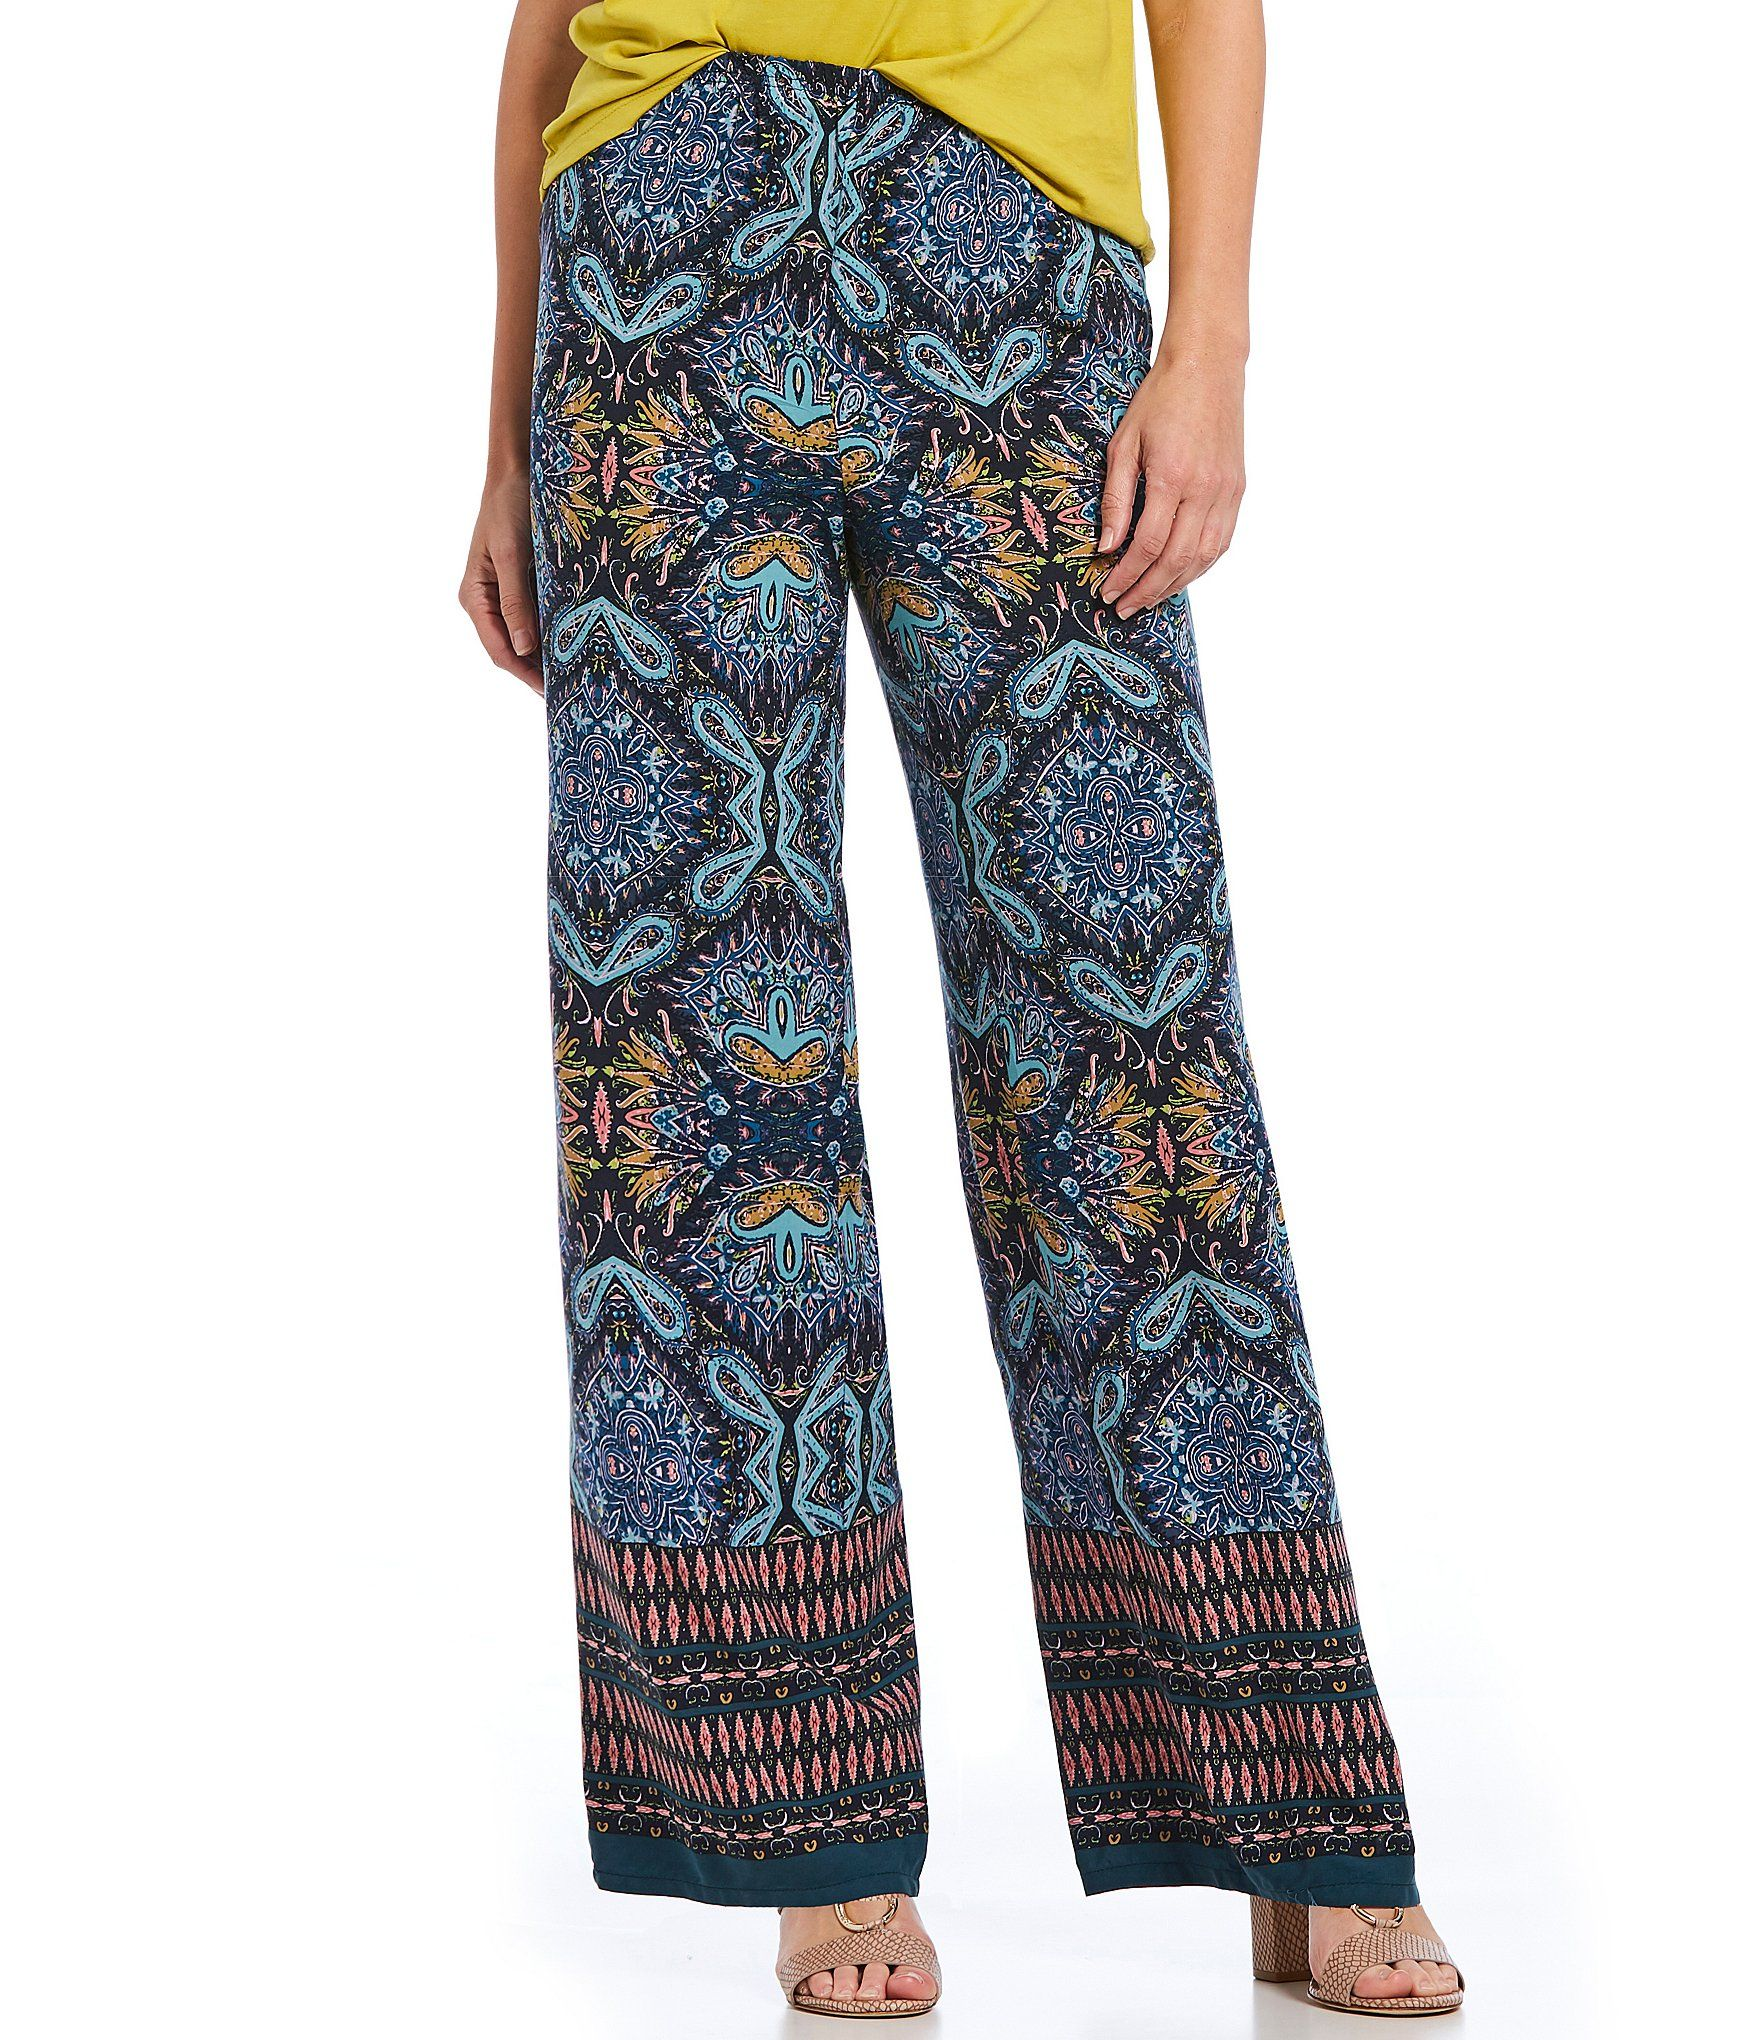 bcbe0b26f6d Shop for Spense Border Print Pull-On Pants at Dillards.com. Visit Dillards.com  to find clothing